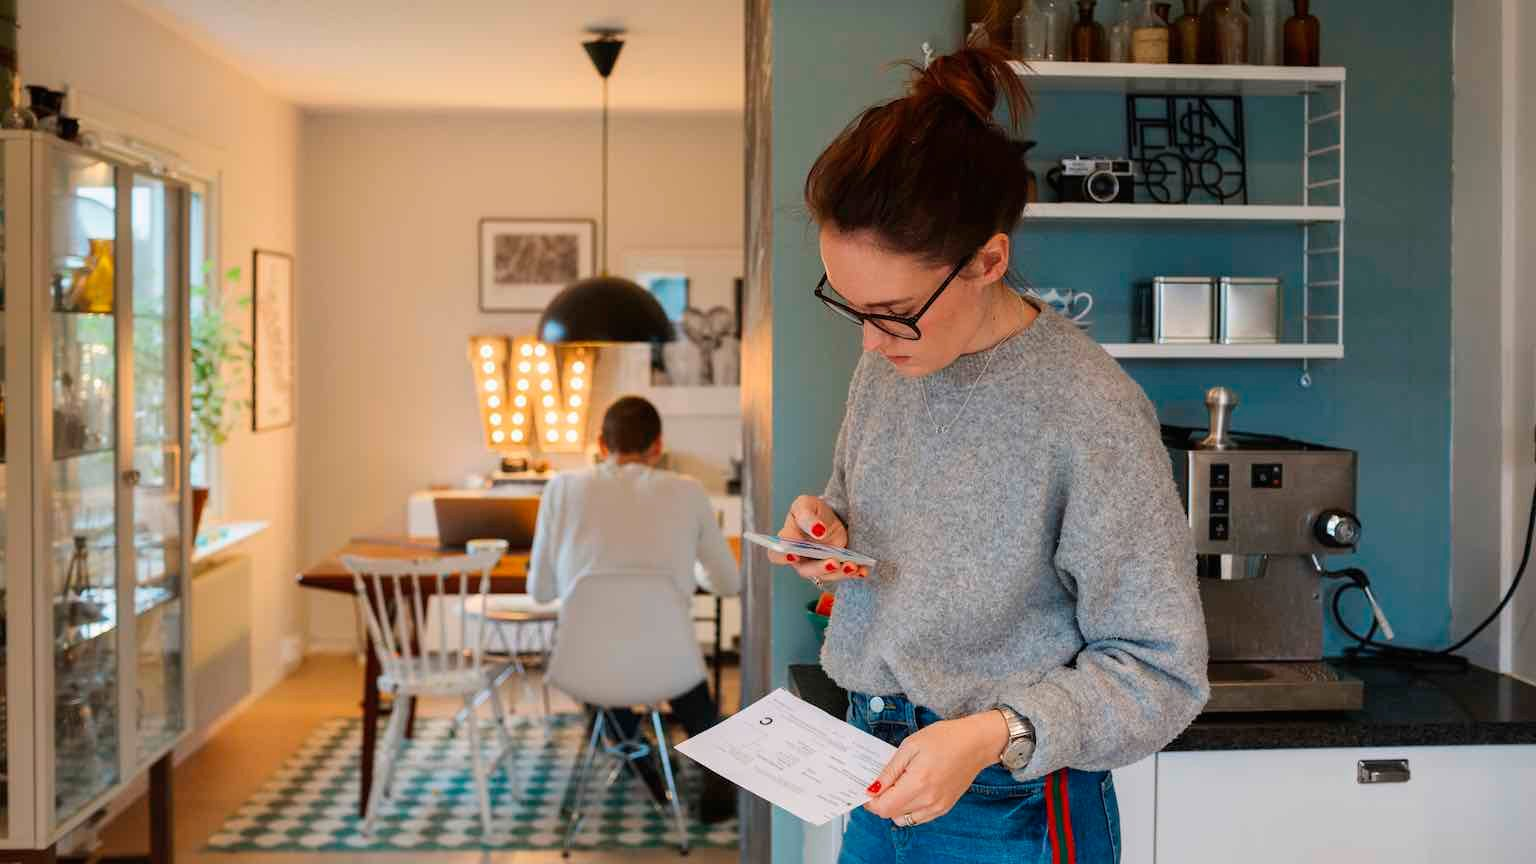 Woman paying bills in kitchen